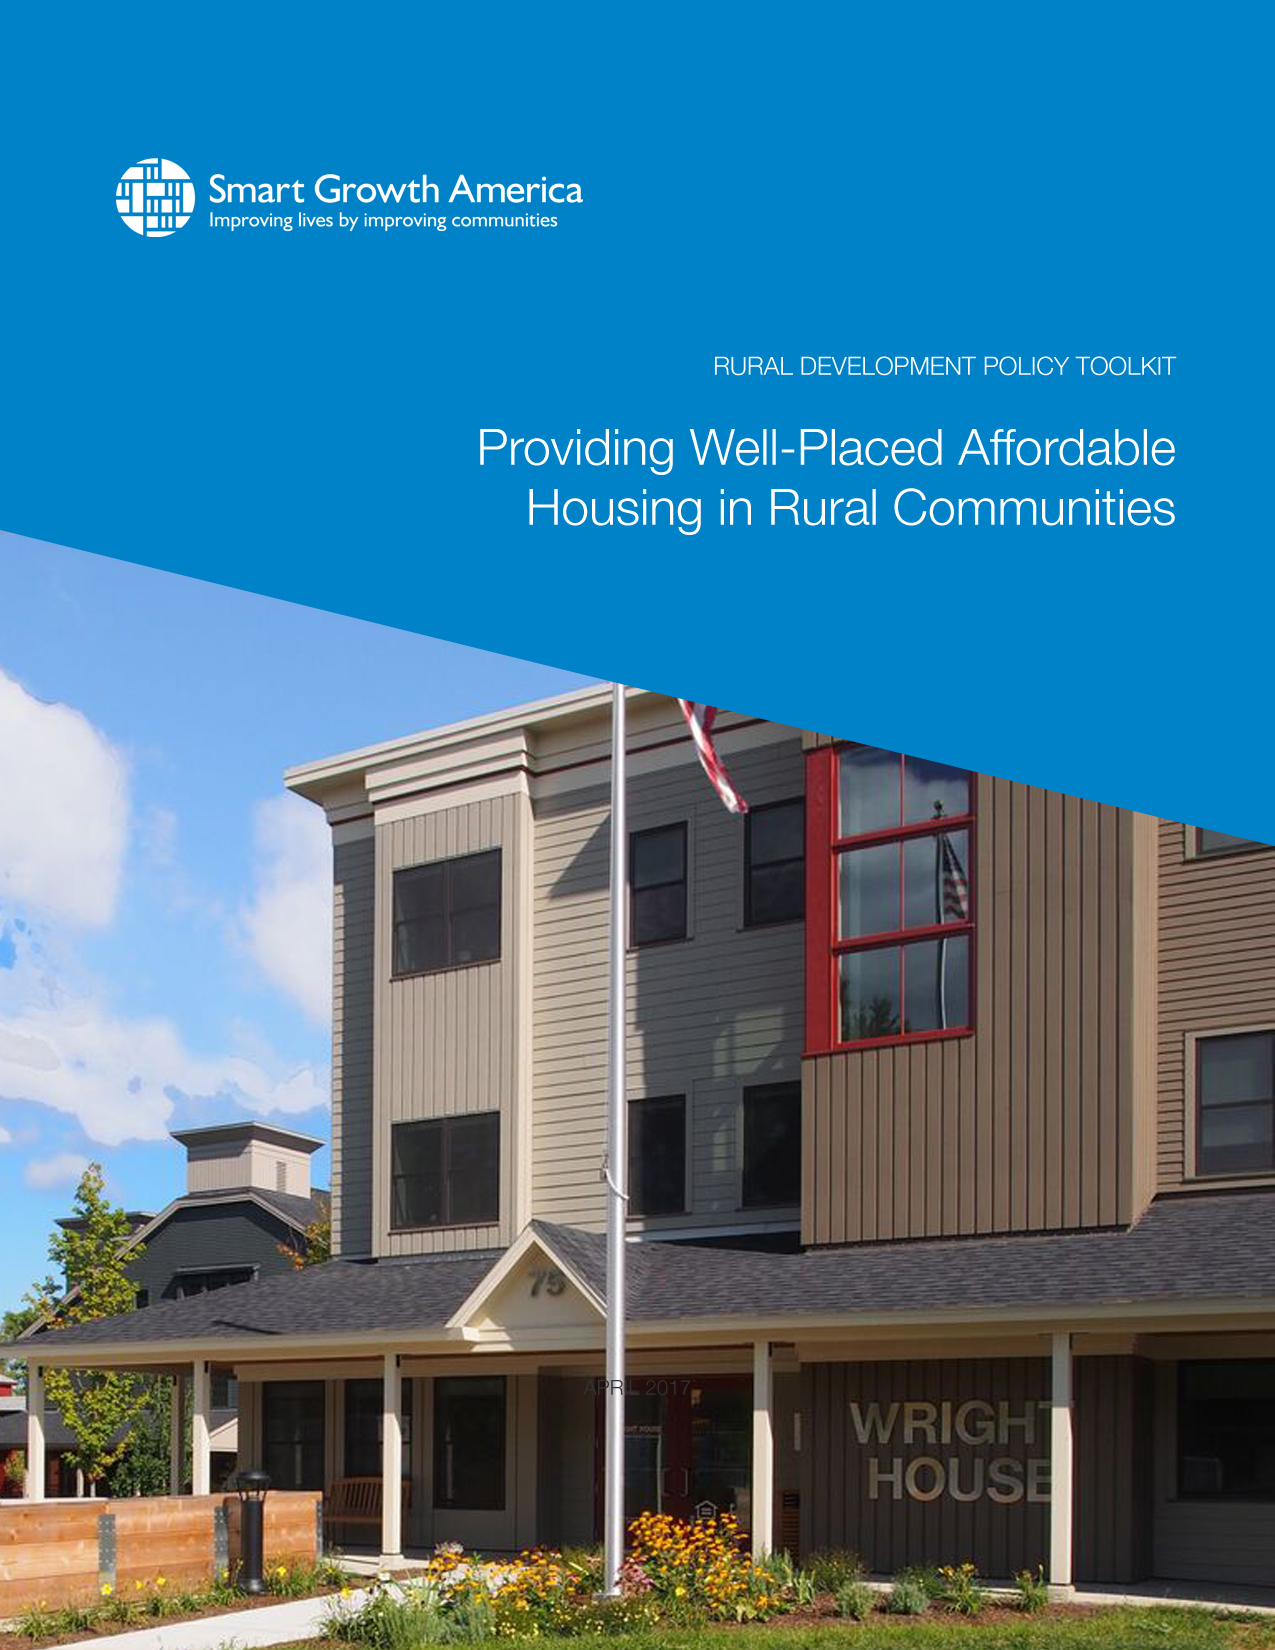 Providing Well-Placed Affordable Housing in Rural Communities toolkit